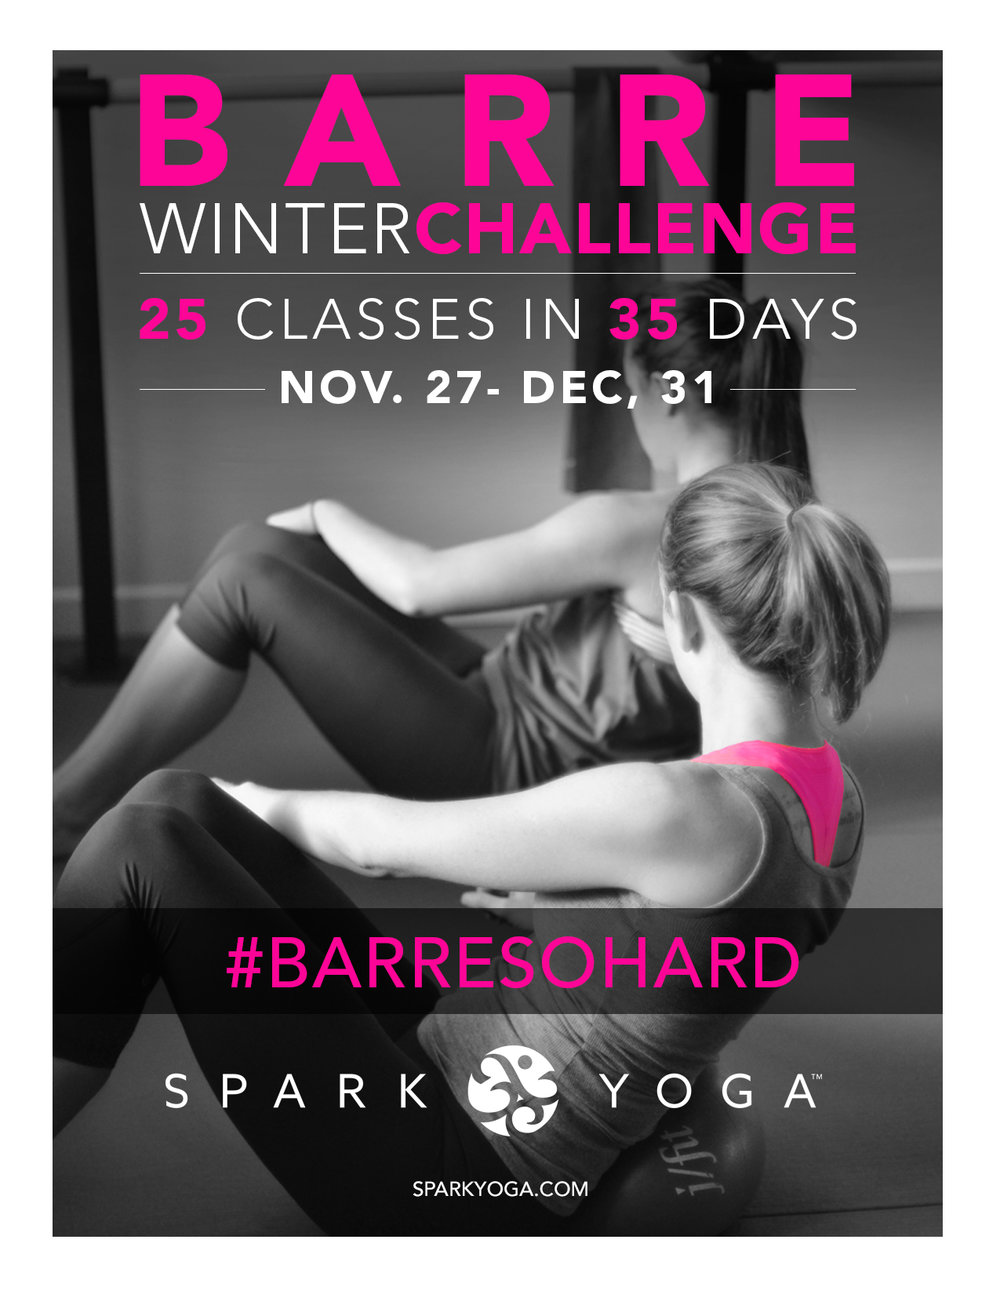 Barre_Winter_Challenge_Poster_2015_FINAL.jpg